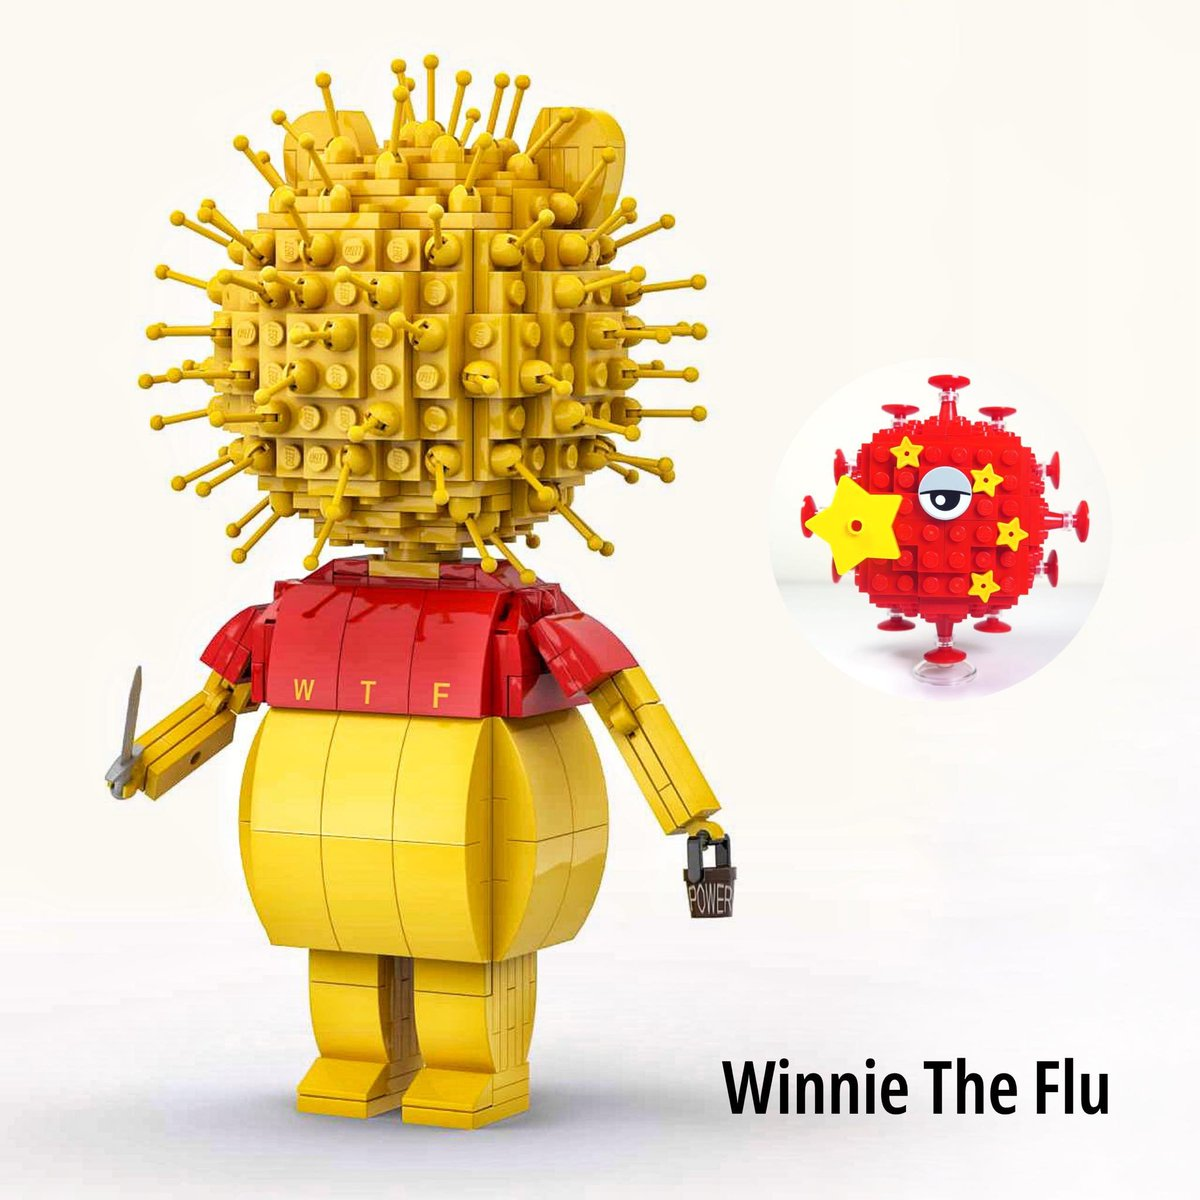 Here is Winnie The Flu that we call as #WTFCredit to Yeahman Tse via Legend Bricks LEGO Forum